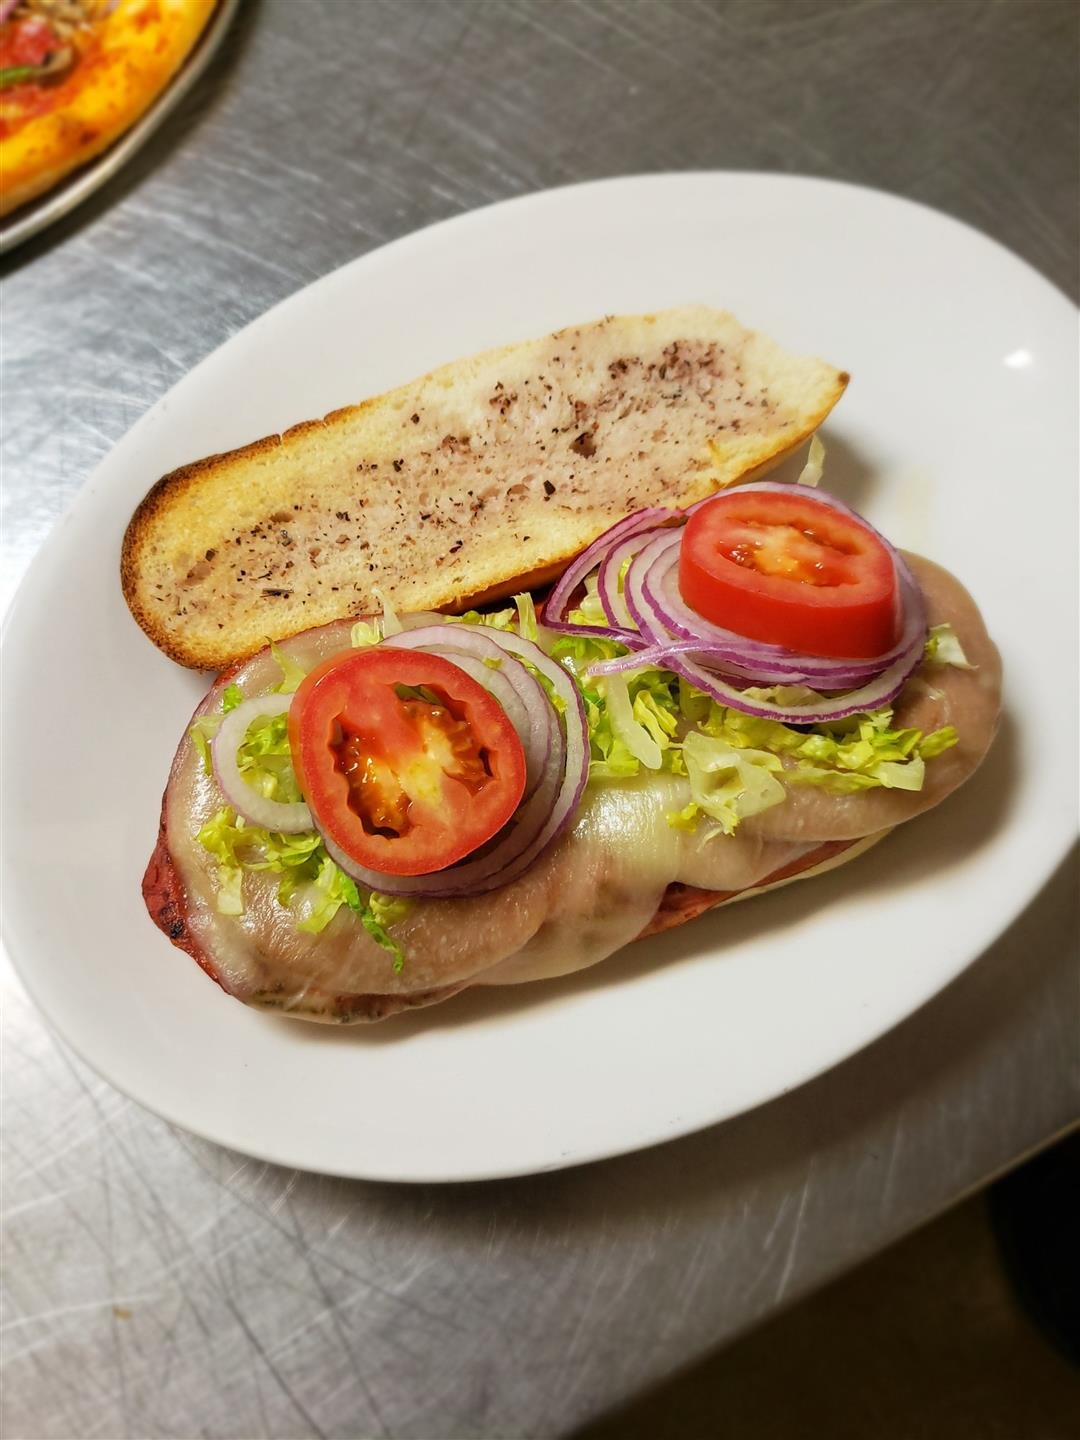 Salami, capicola, ham, provolone, oil and vinegar, lettuce, tomato and onion on a roll